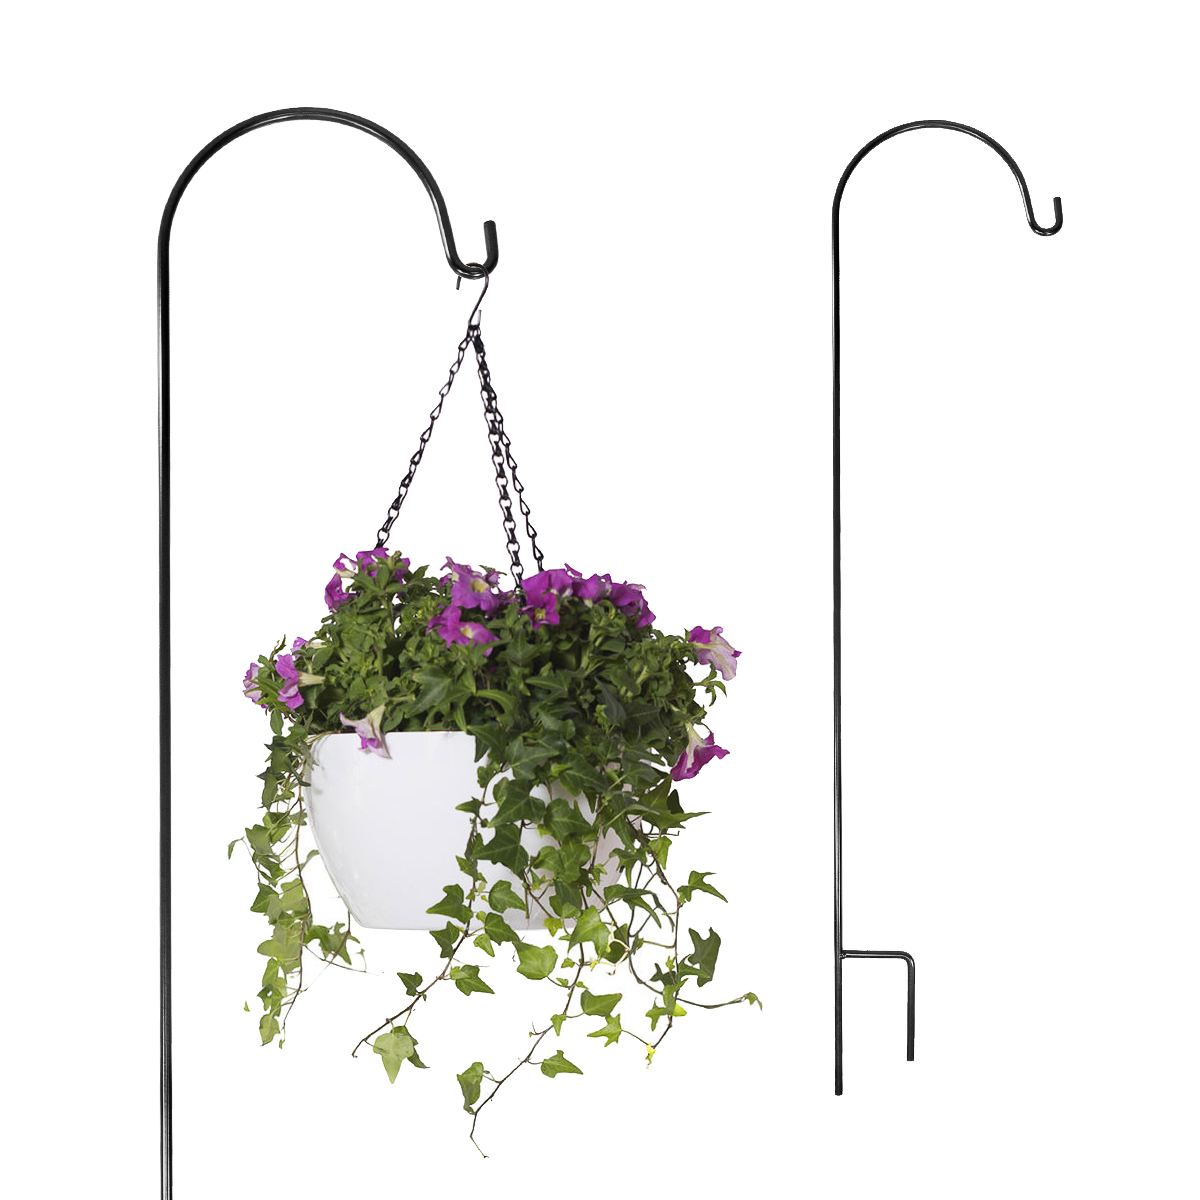 2 Brinkman Shepherds Hooks Hangers For Gardens Plants Yards Chimes Lawns Feeders